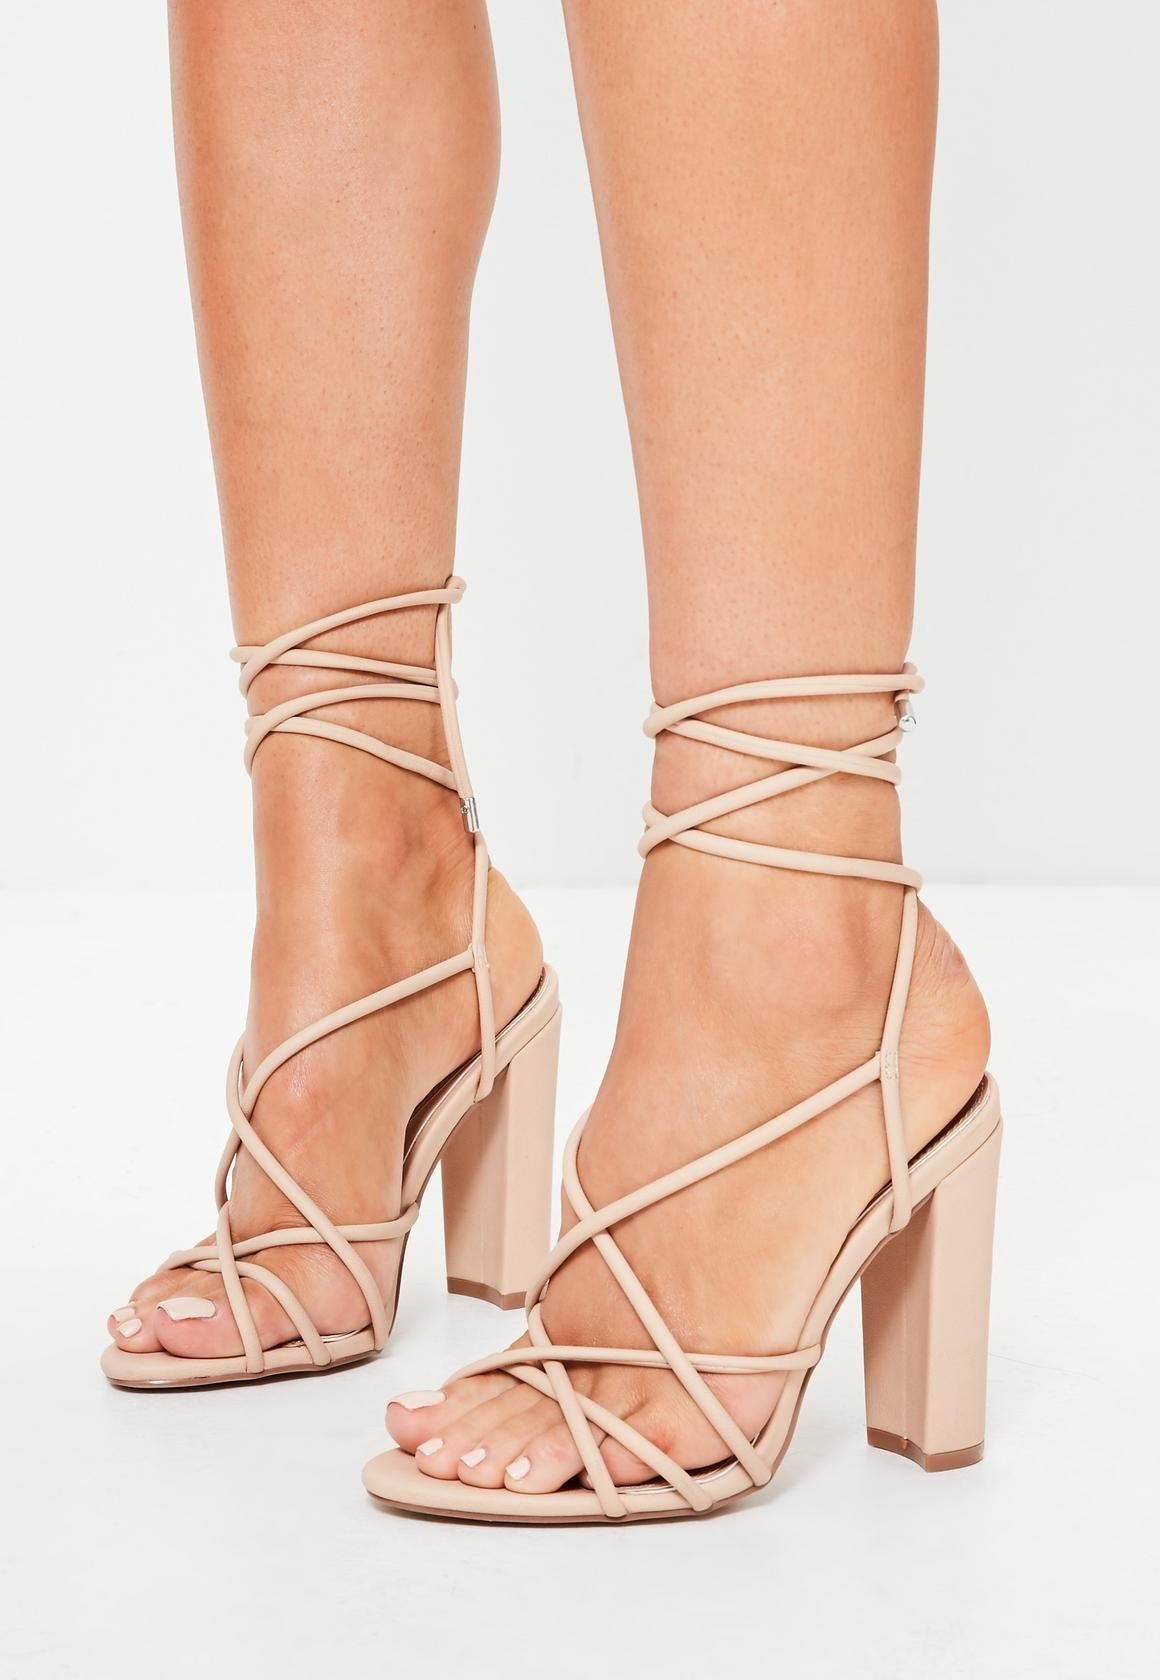 9c6cb7ade1a8 Missguided - Nude Curved Block Heel Multi Strap Sandals